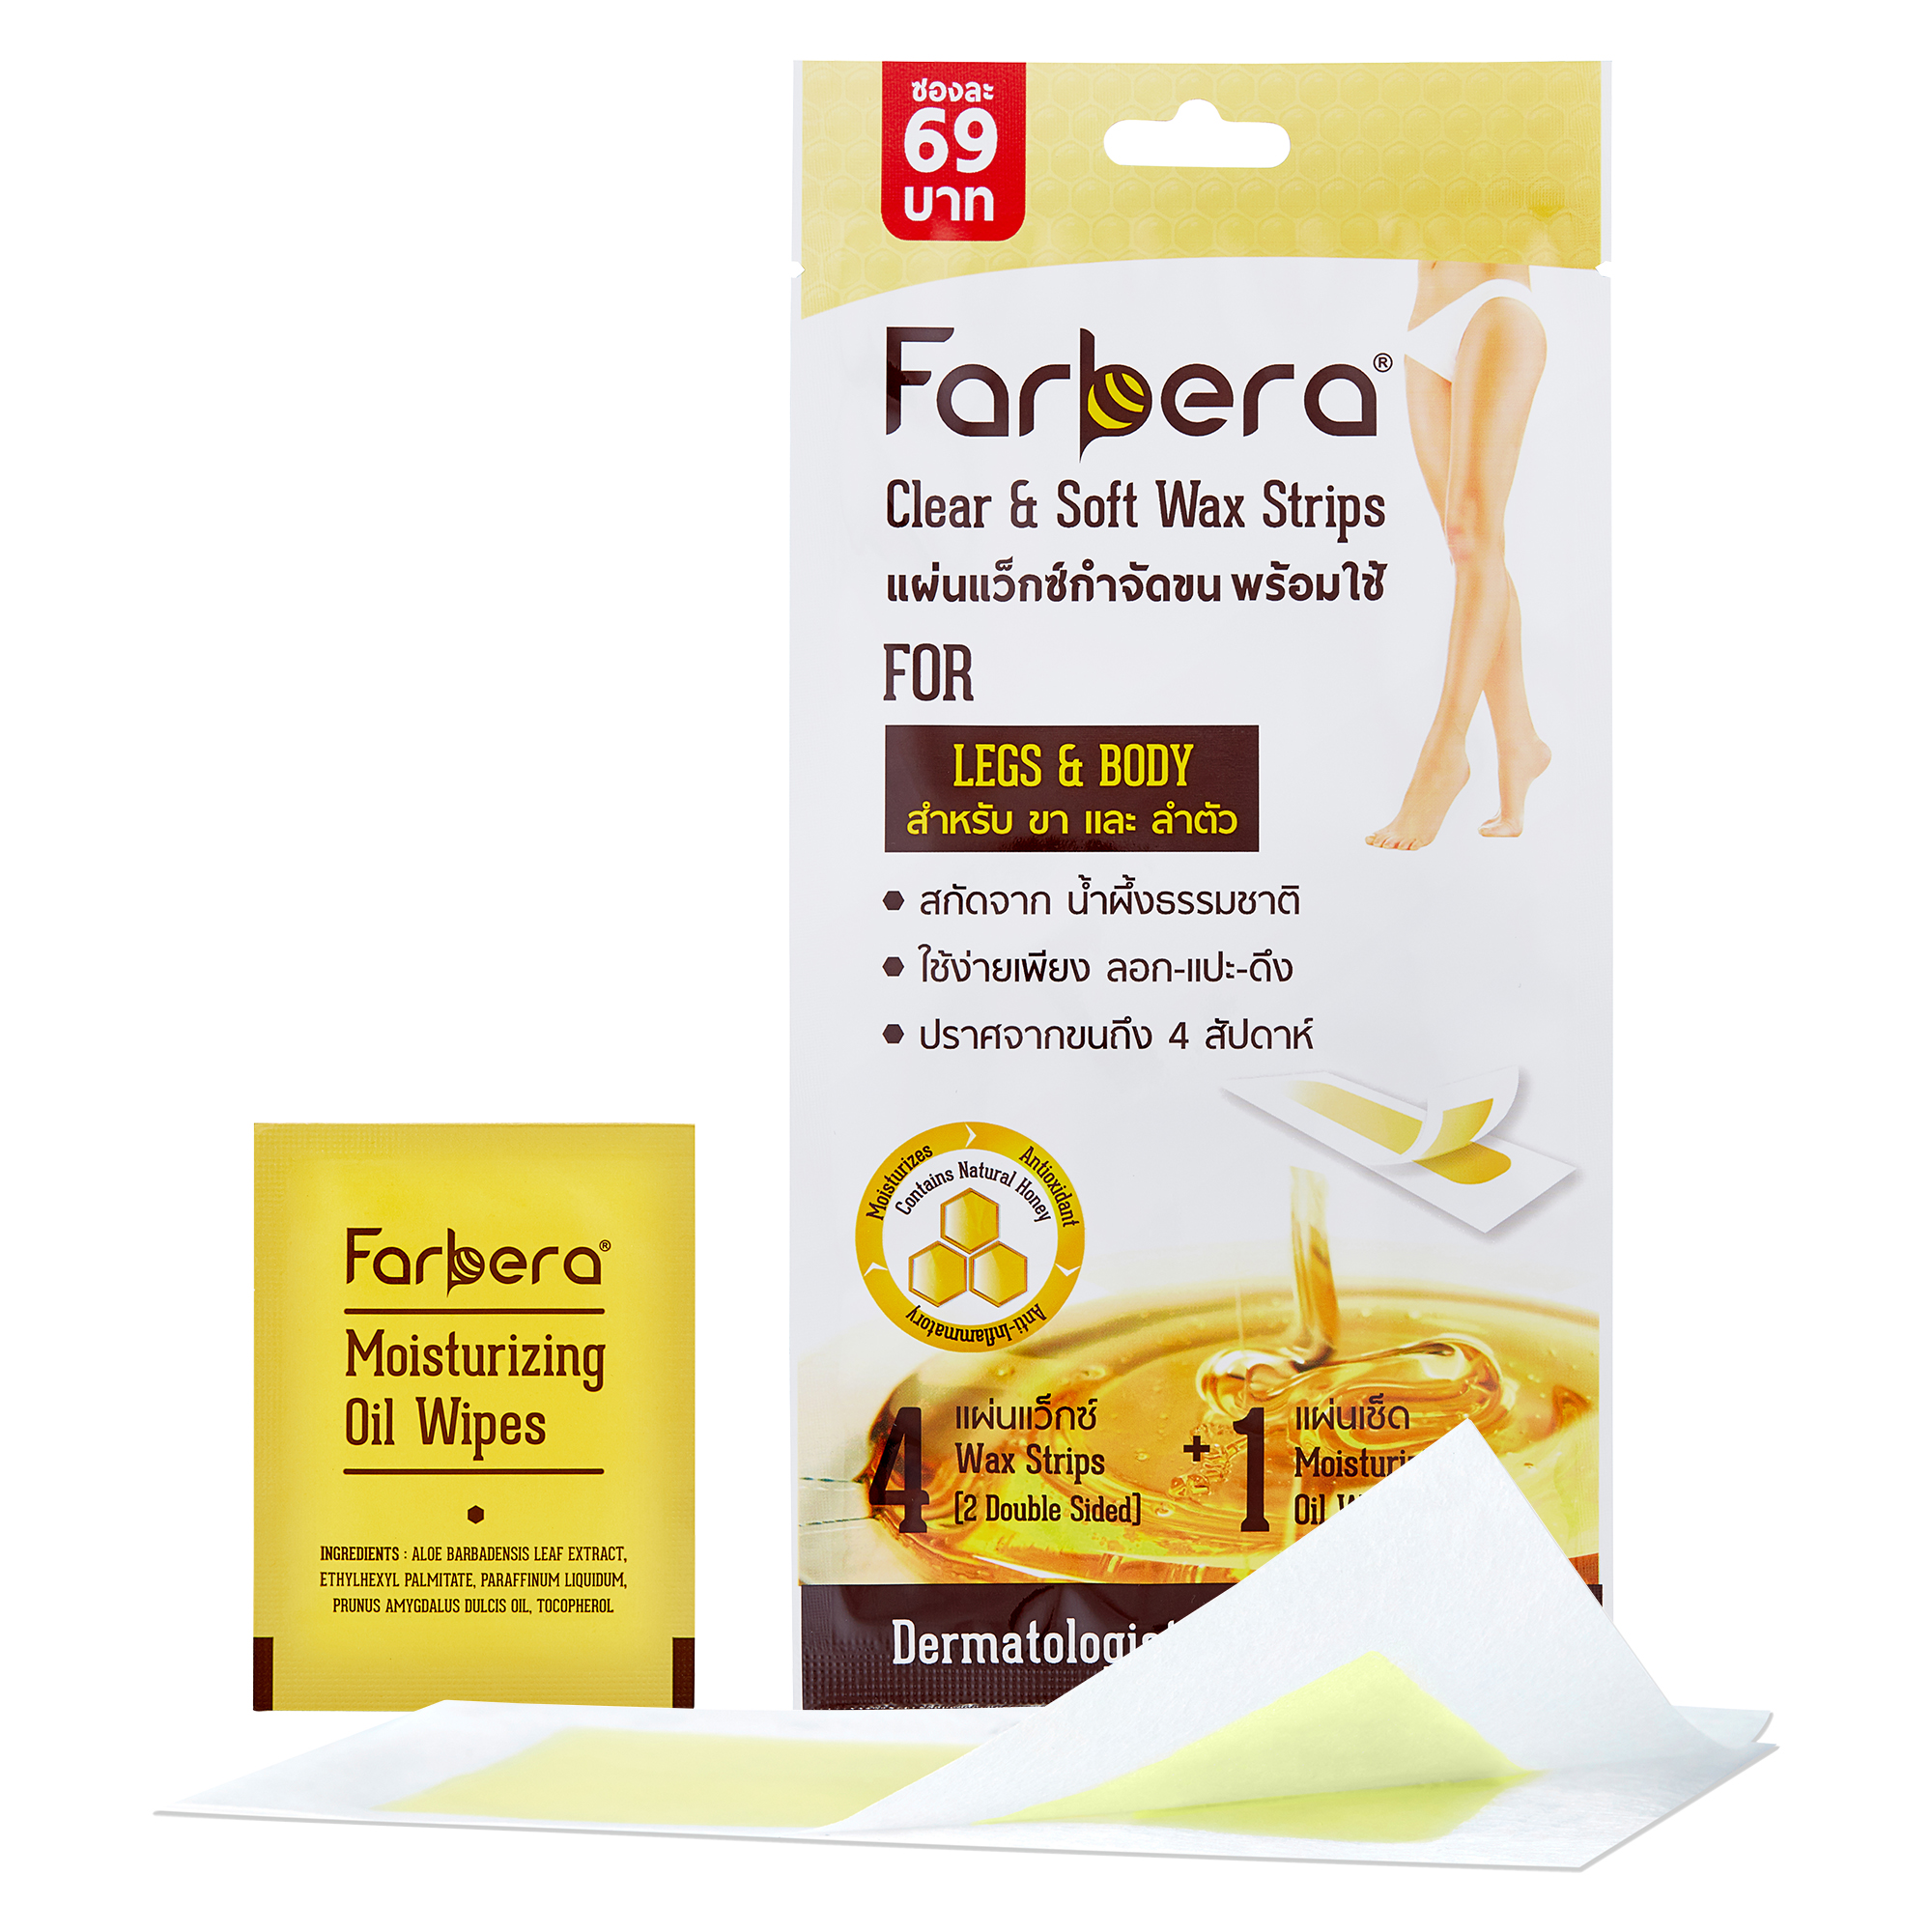 Farbera Clear & Soft Wax Strips (Legs & Body) 4 แผ่น